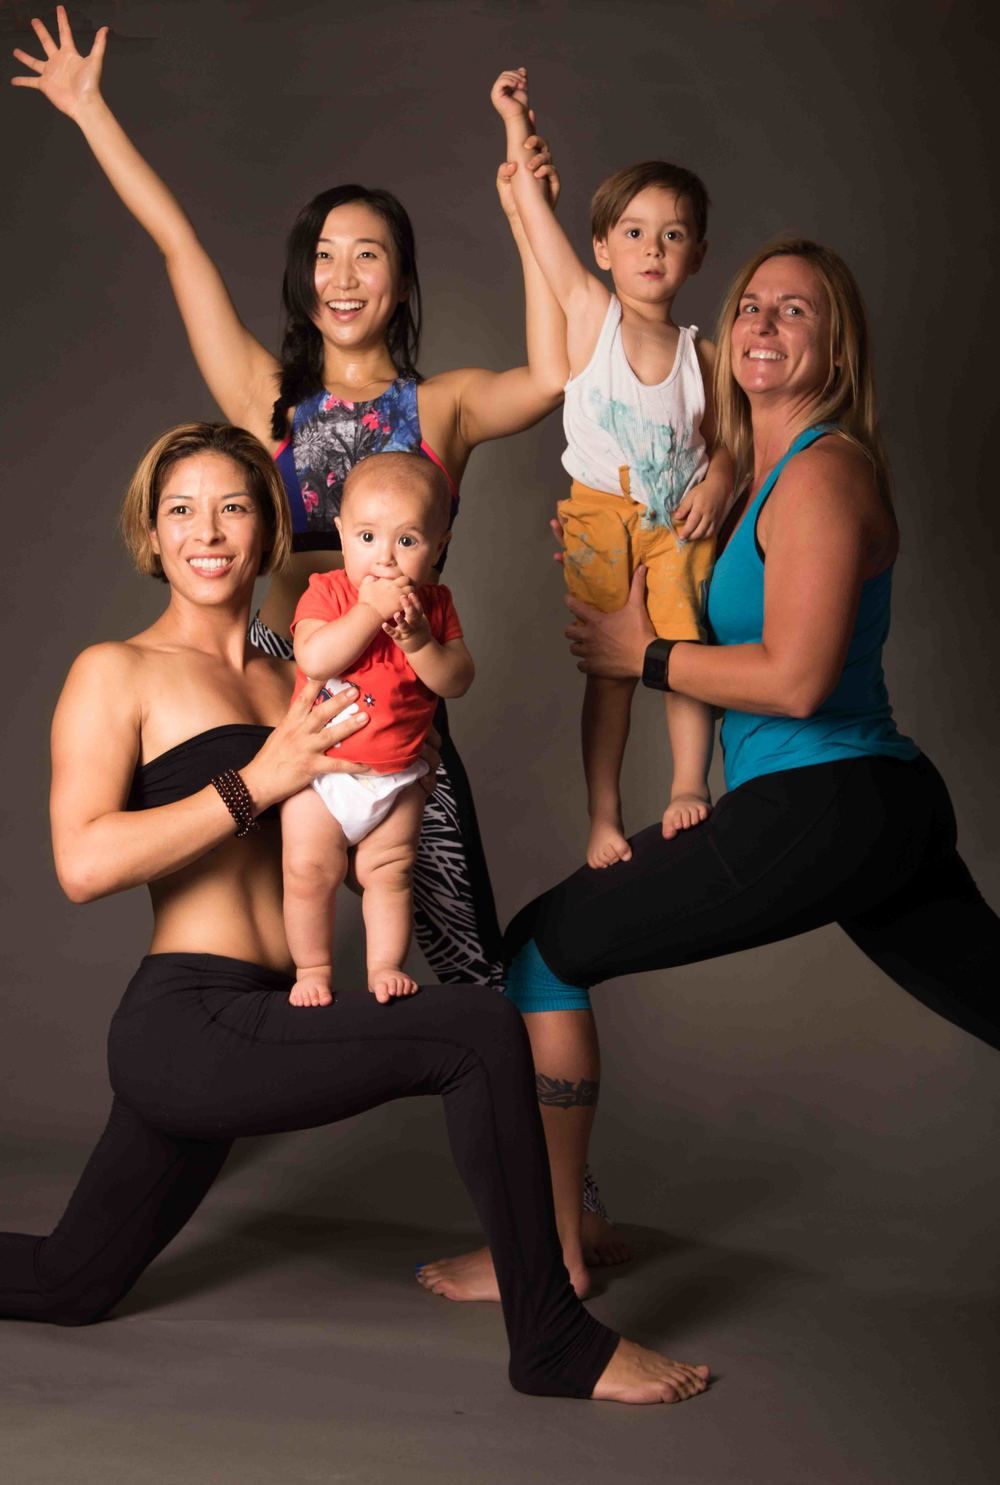 Santa Anita Hot Yoga Kayla Group Pose 6768-.jpg